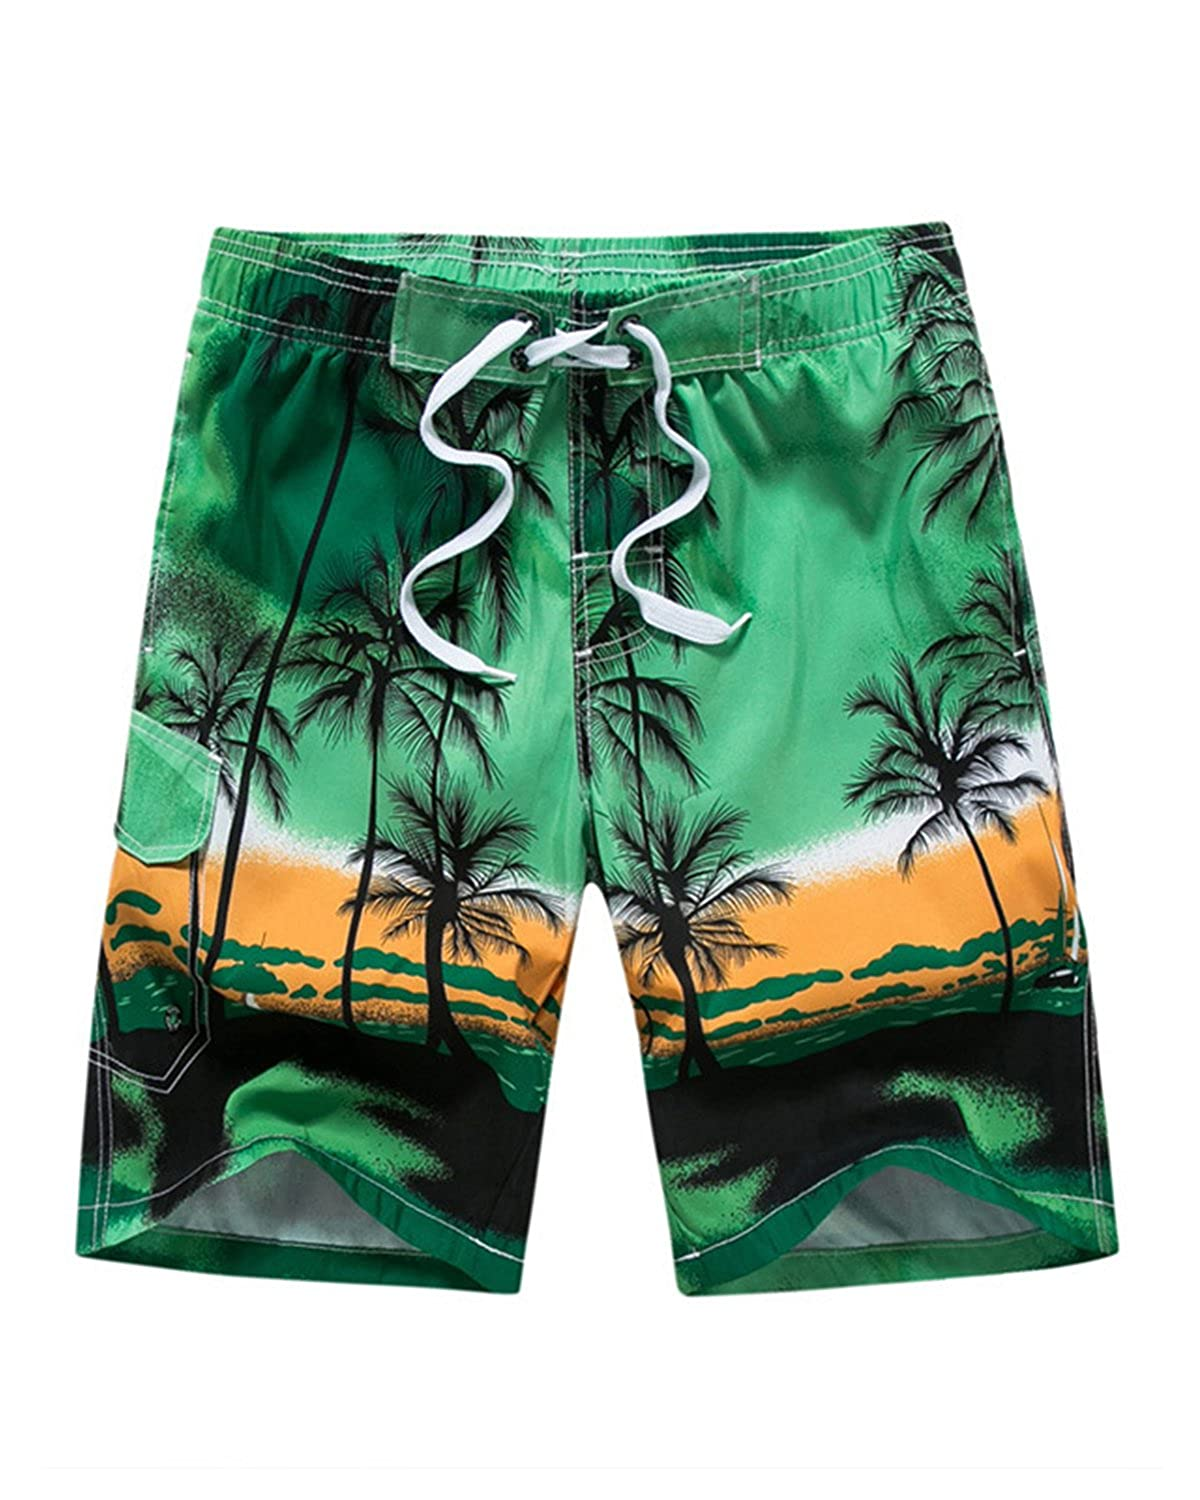 17106b7c4174b Design: Many style provided, colorful tropical coconut tree, Irregular  geometry print and letters pattern, suitable for all ages to wear and you  can feel ...